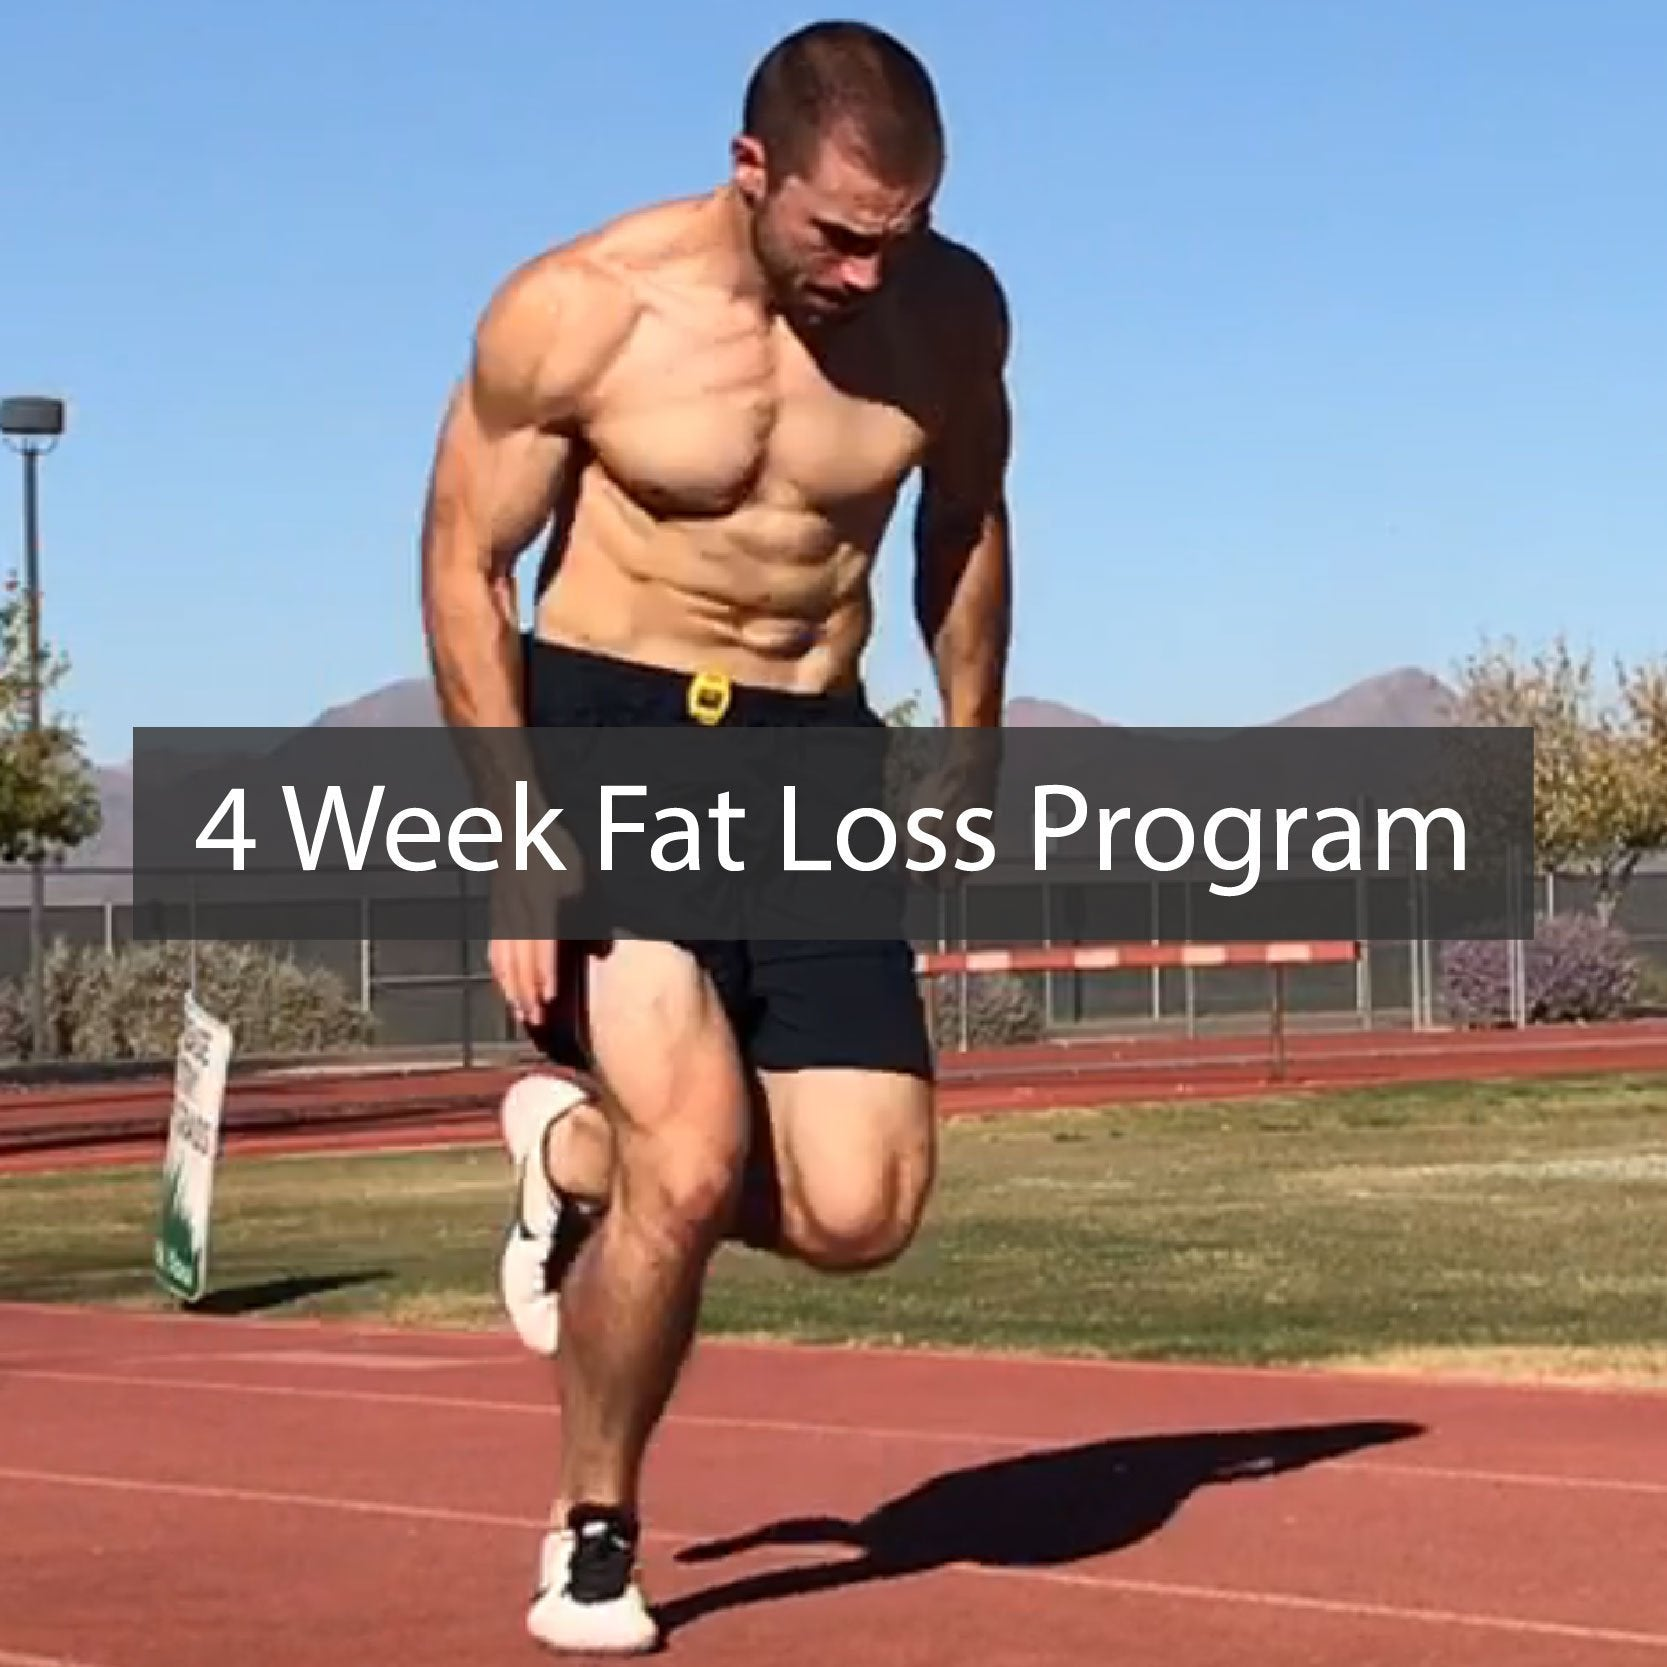 Sprinting For Fat Loss - Weight Loss Program